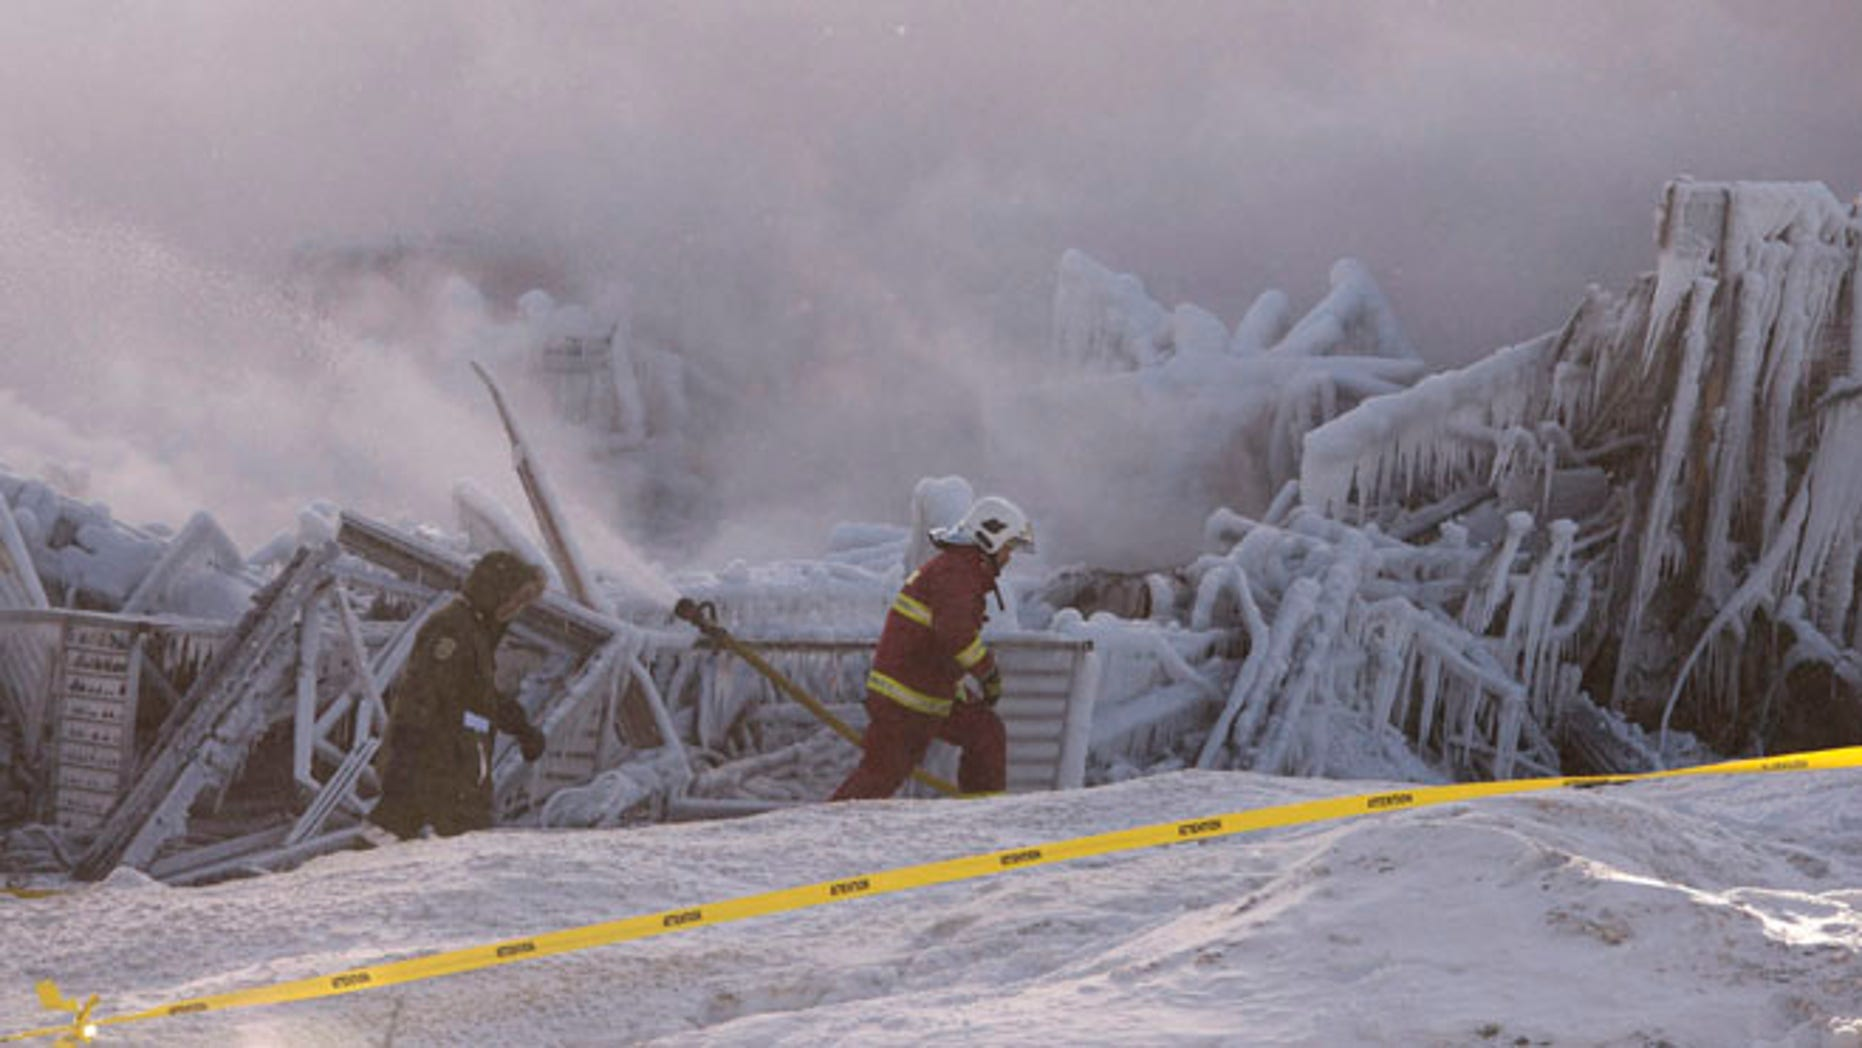 Jan. 23, 2014: Firefighters work at the scene of a senior's residence fire in L'Isle-Verte, Quebec.